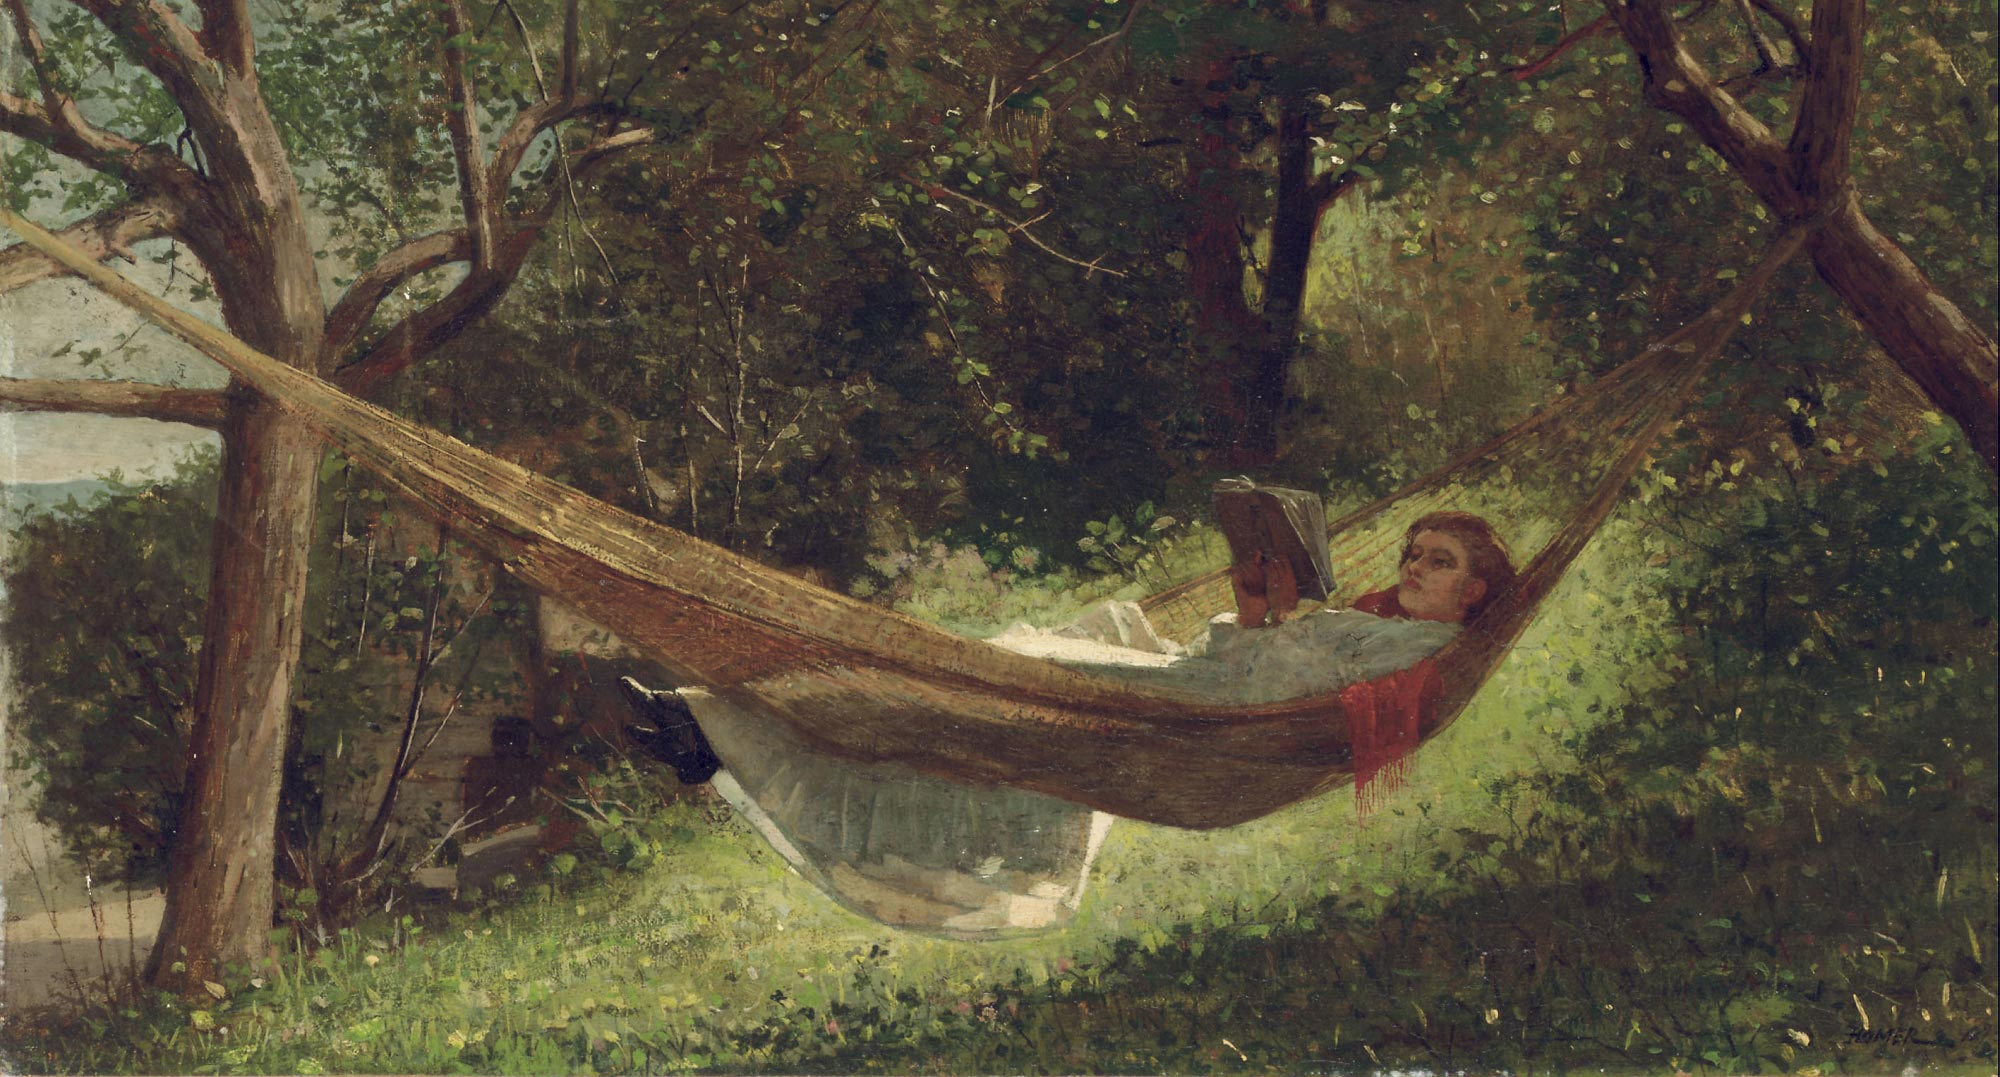 winslow homer girl in the hammock cover - Главная - Заборона